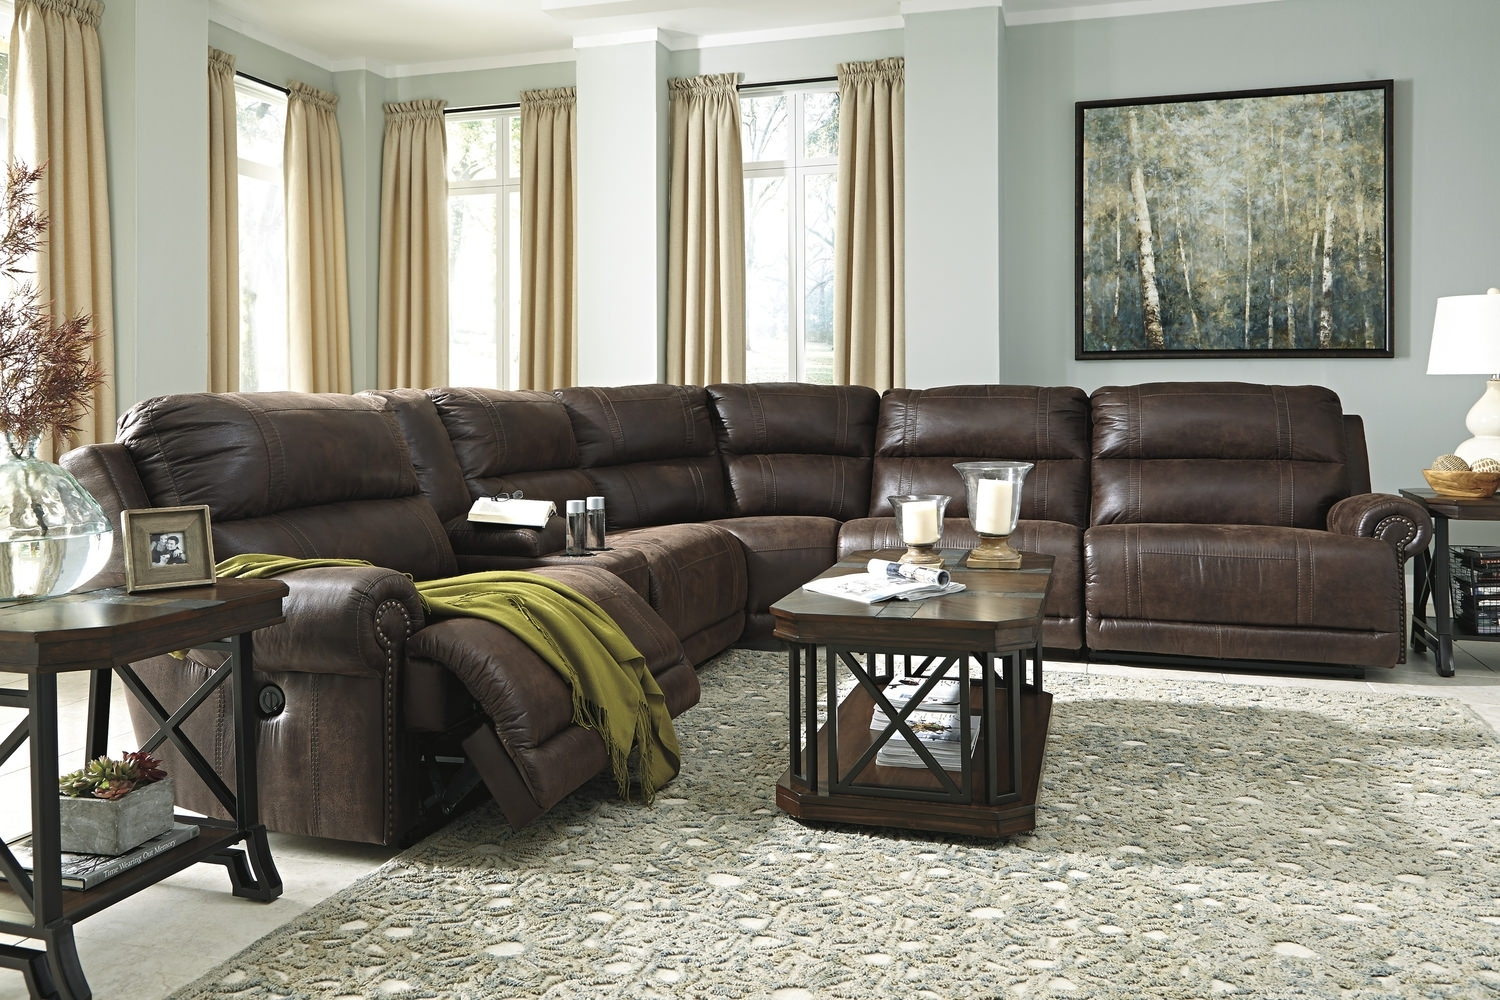 Placer 6 Piece Power Reclining Modular Sectional | Dock86 Intended For Blaine 4 Piece Sectionals (Image 15 of 25)